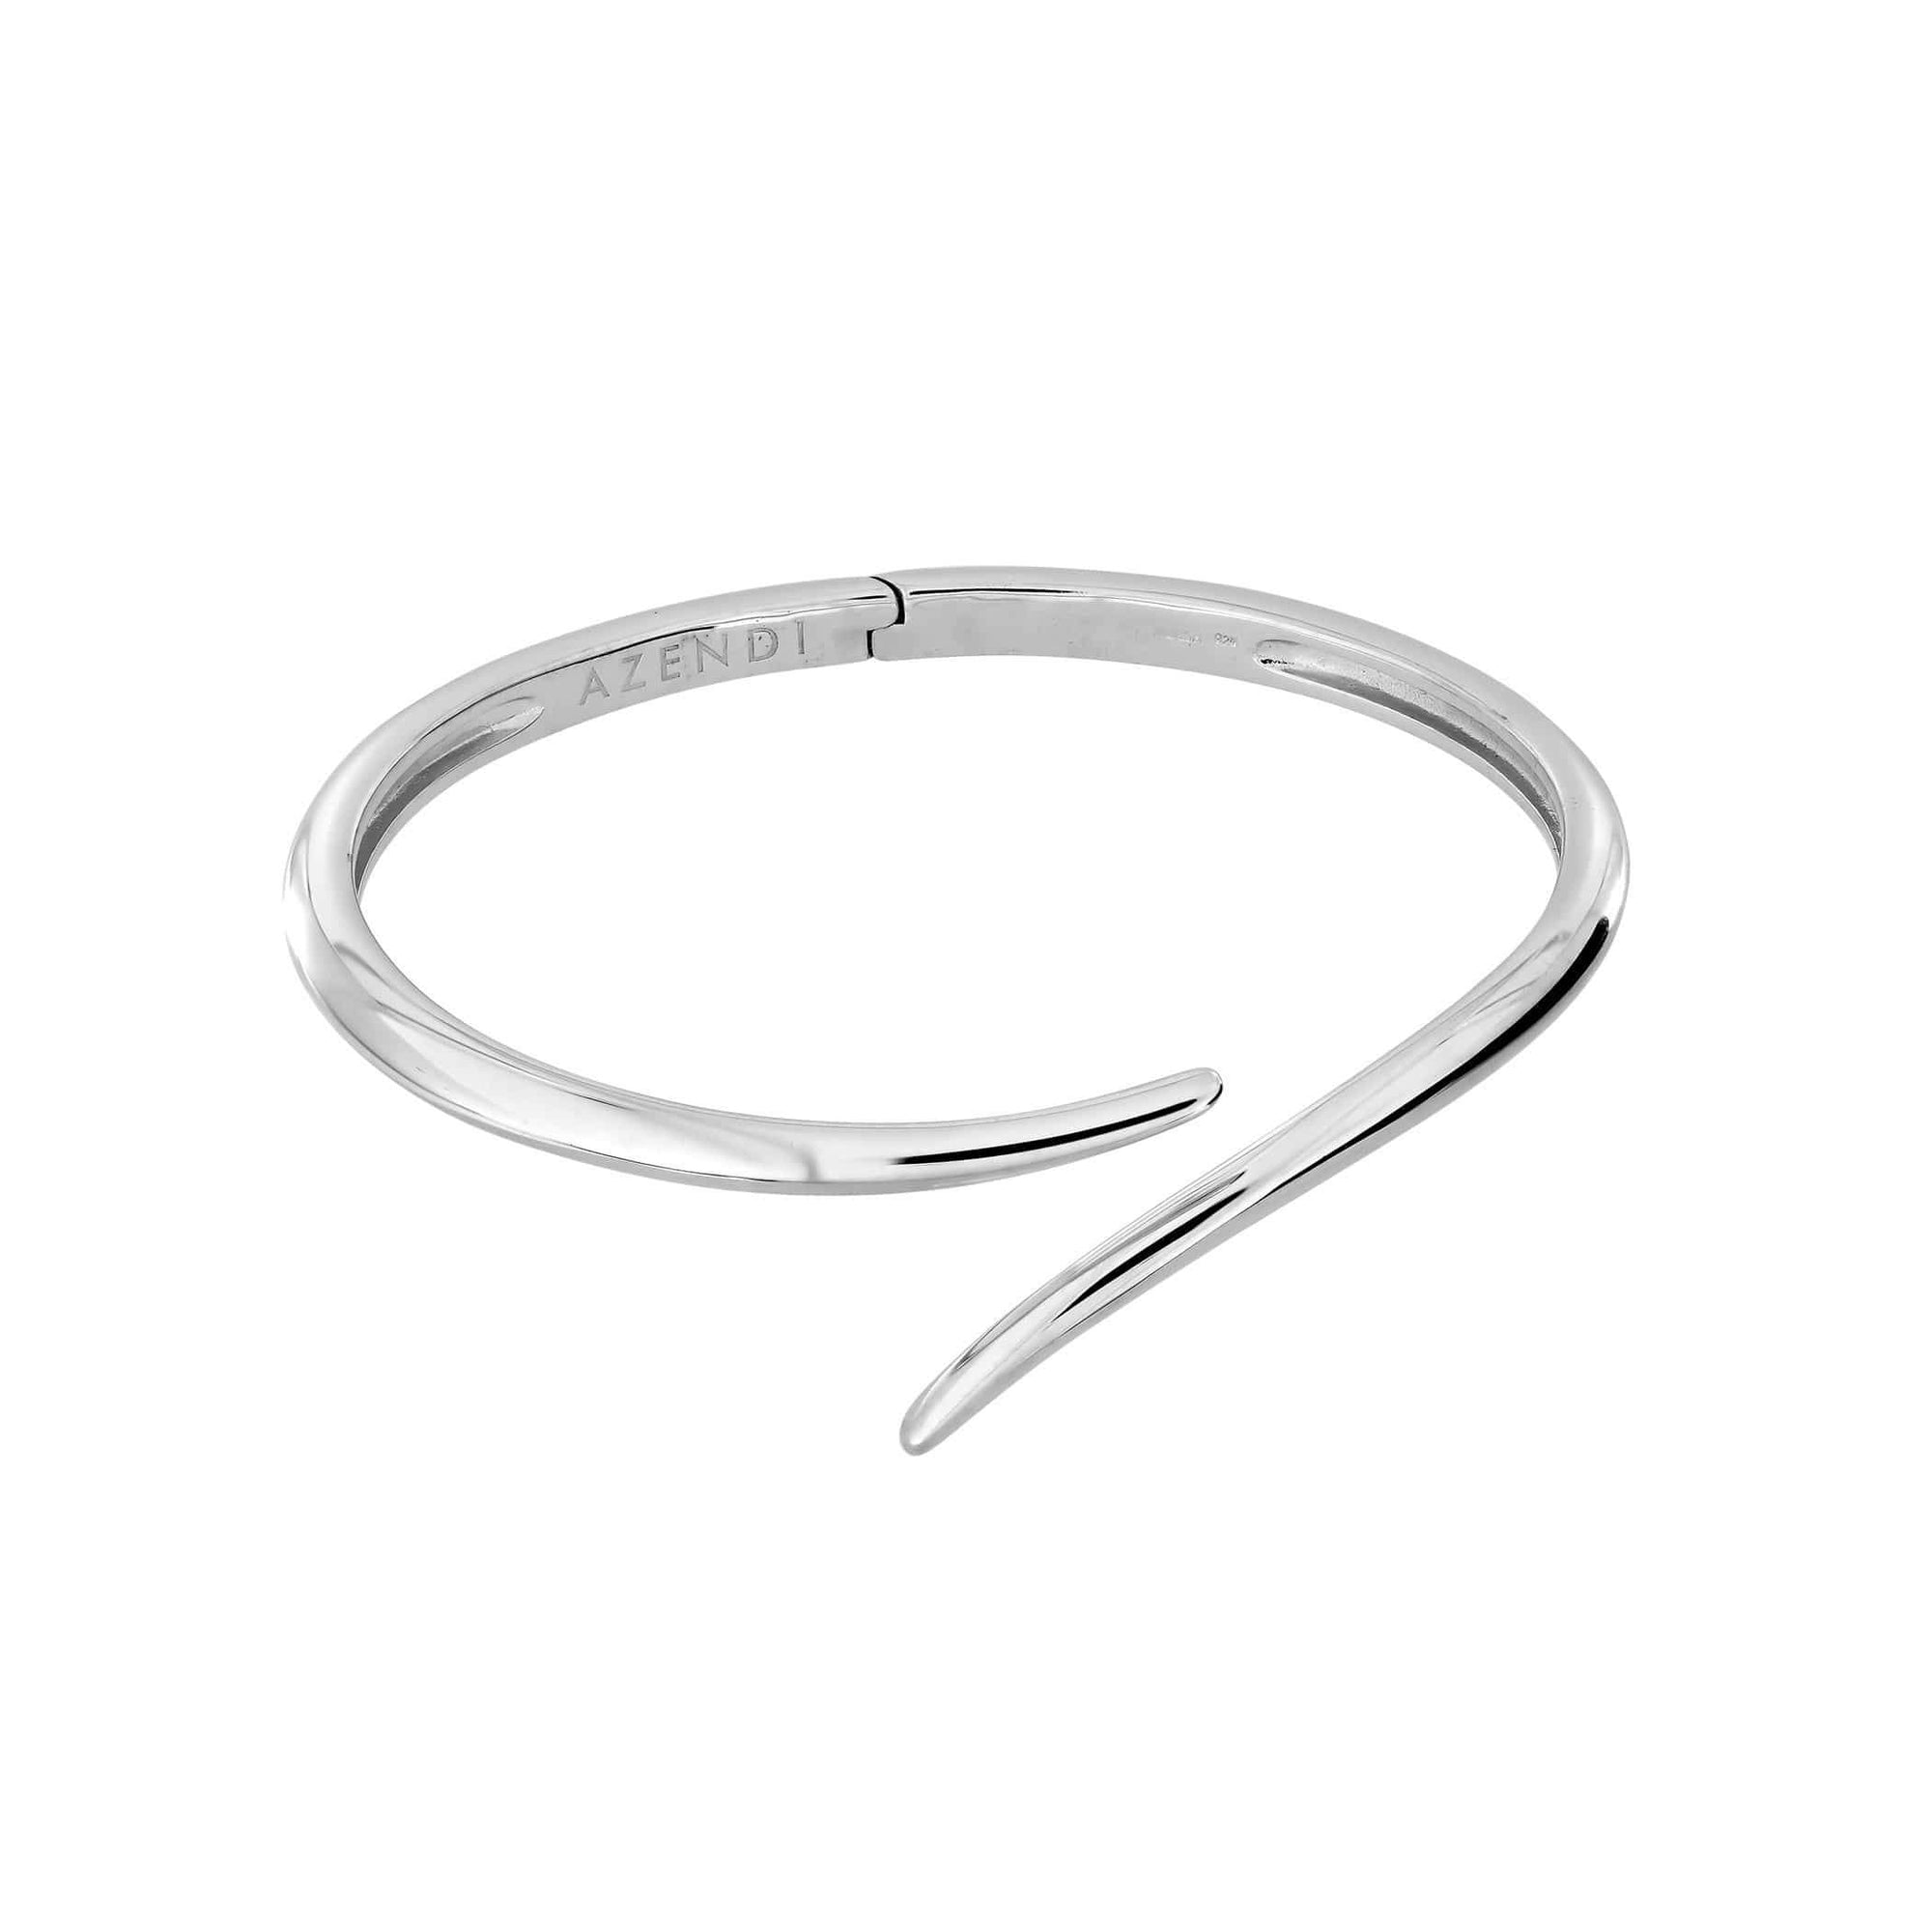 Small: 5.8cm Silver Curl Bangle